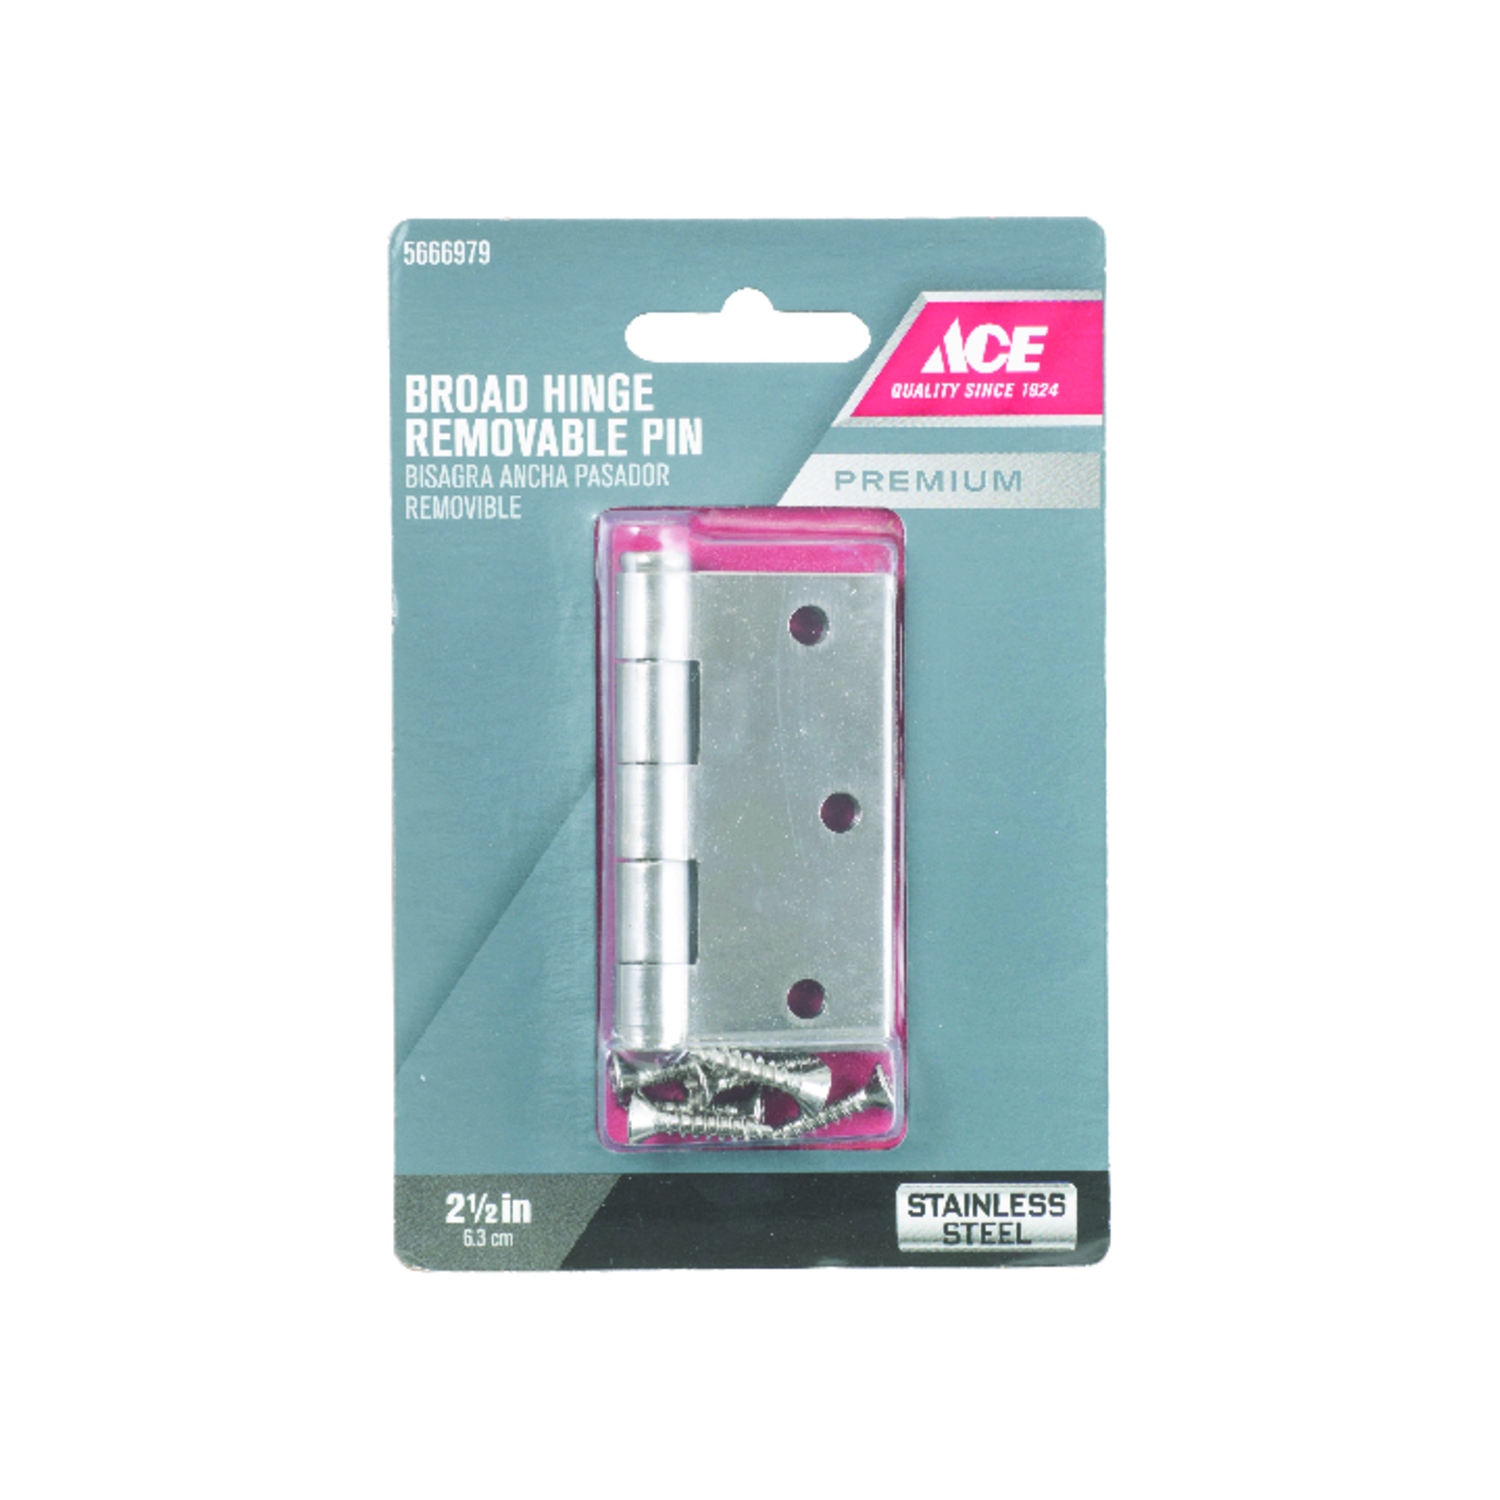 Ace  2-1/2 in. L Stainless Steel  Stainless Steel  Door Hinge  1 pk